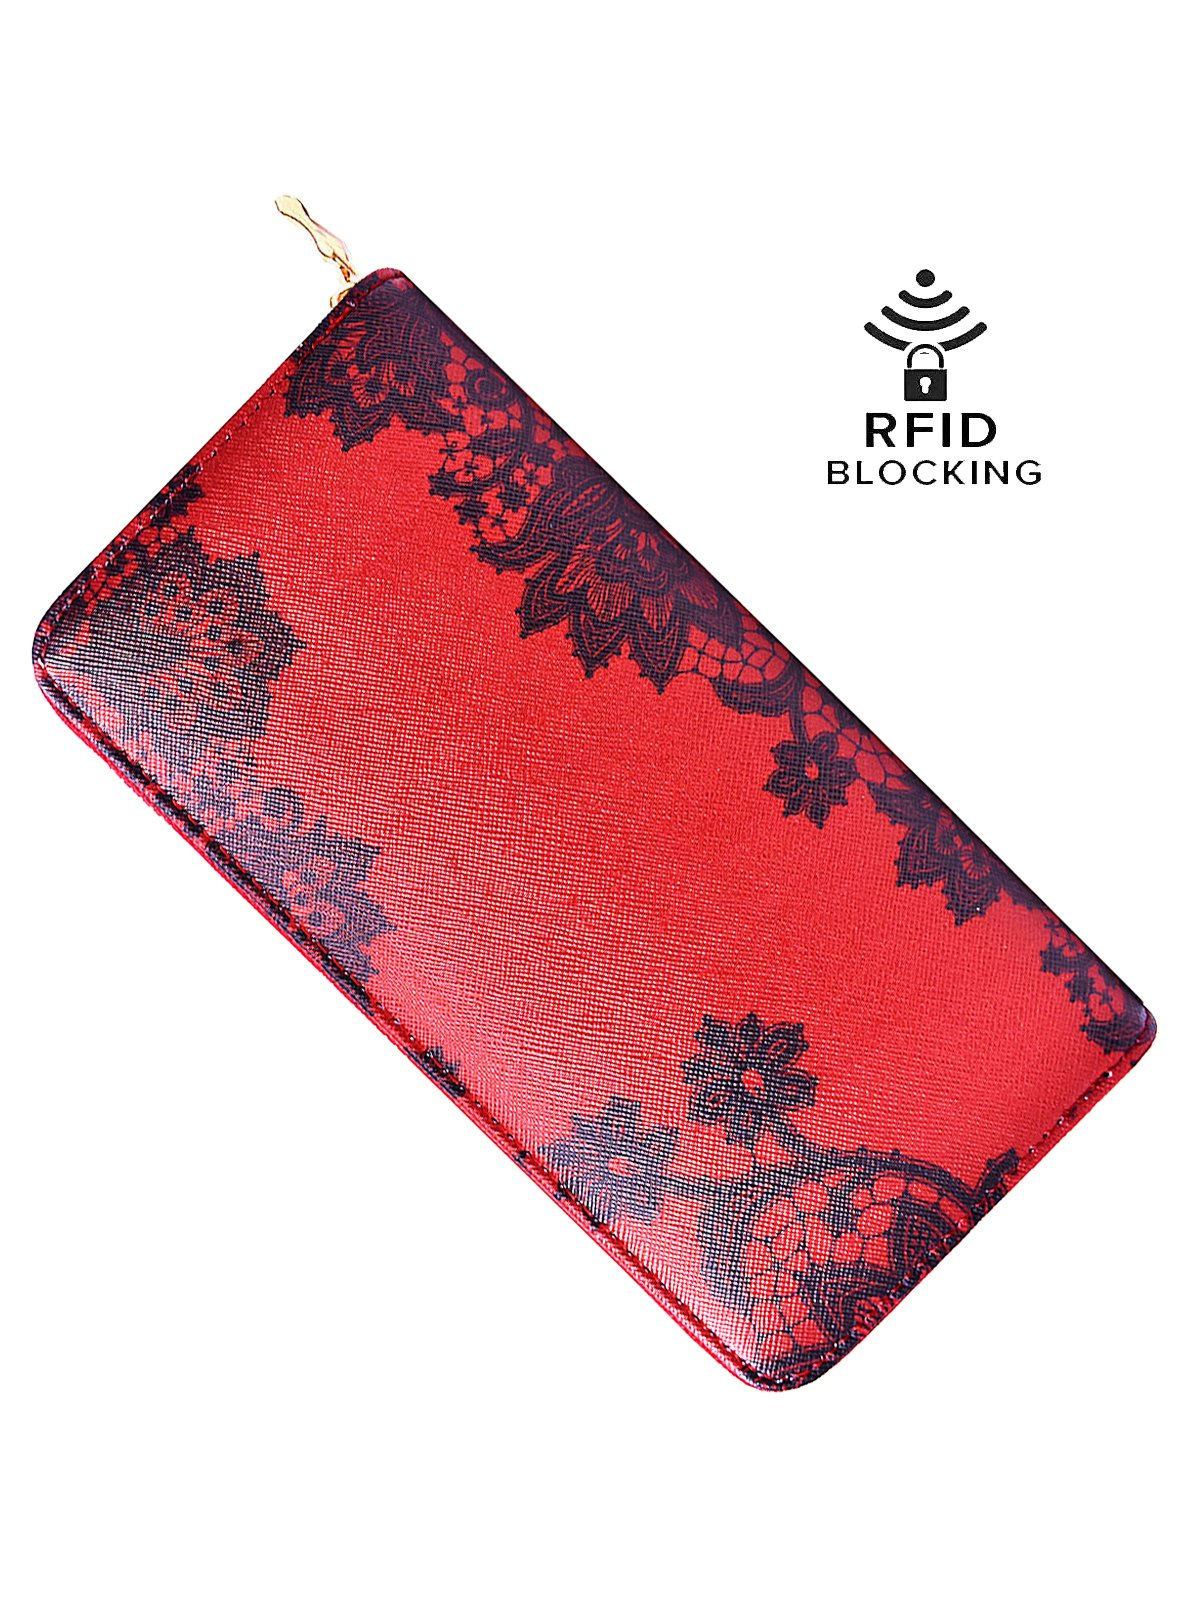 Red Wallet Womens Fashion Lace Style Clutch Long Purse Elegant Sexy Handbag Clutch Multi Card Organizer -Laimi Duo (MAROON-LACEWORK) by Laimi Duo